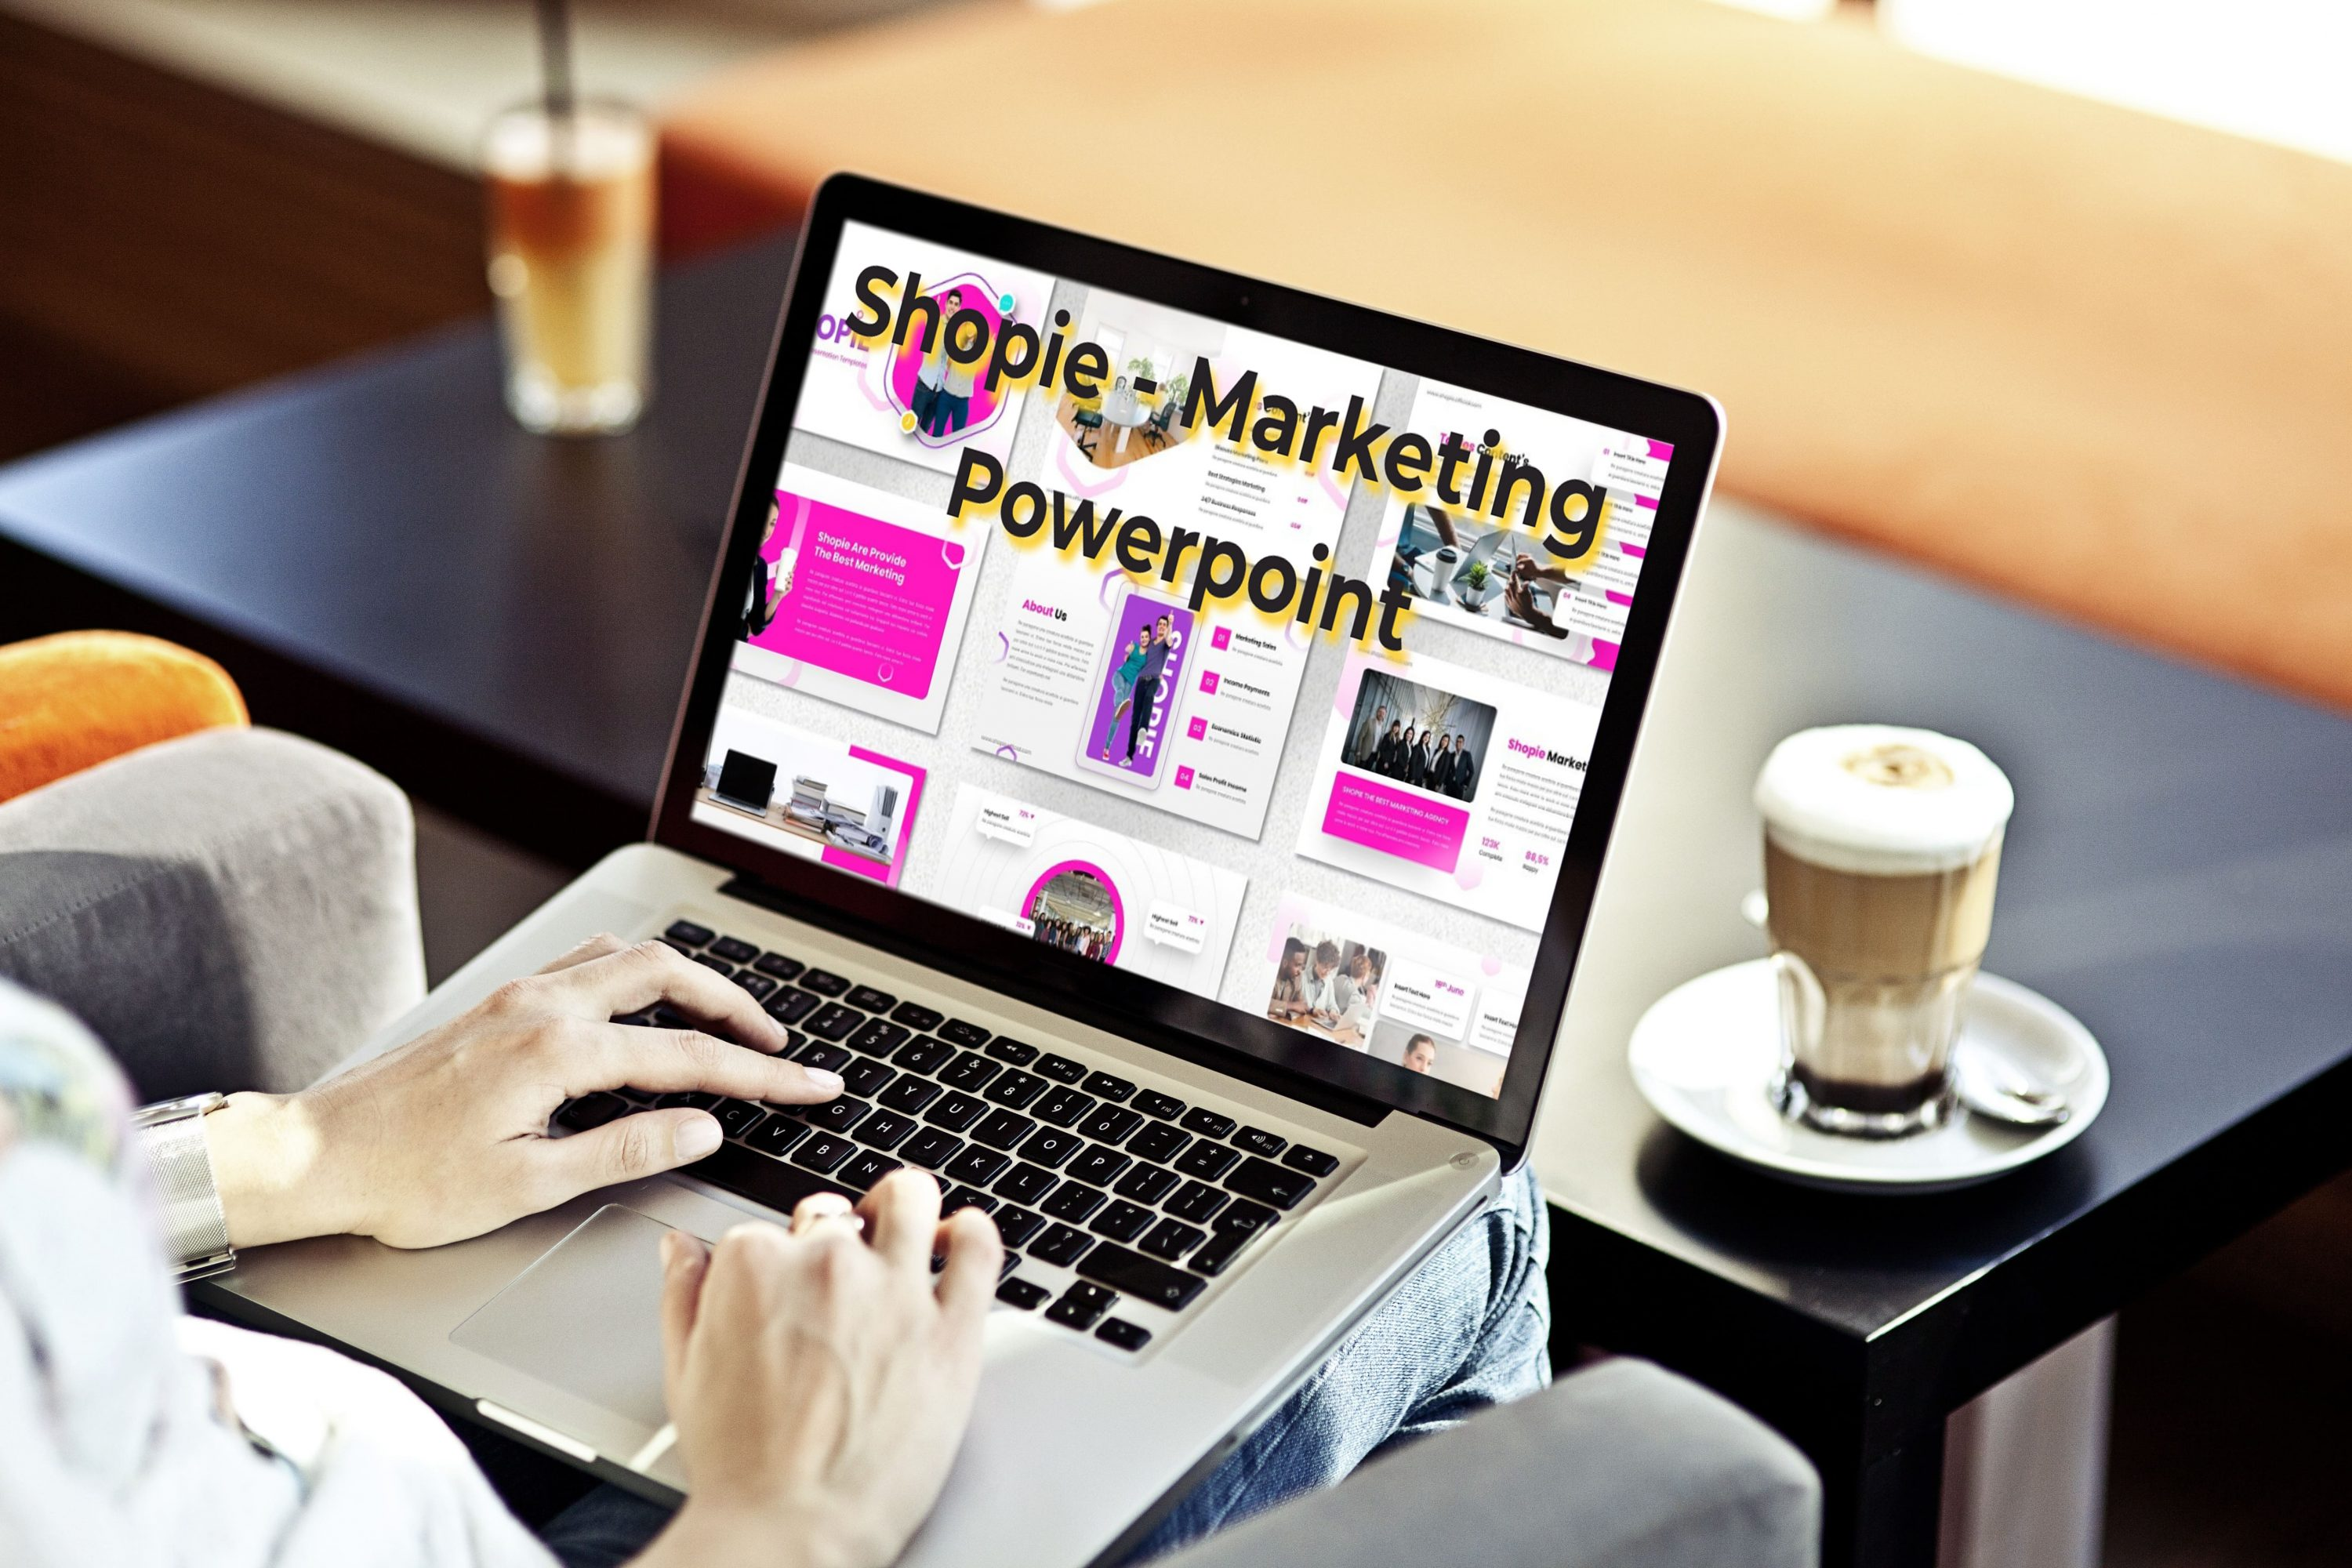 Laptop option of the Shopie - Marketing Powerpoint.